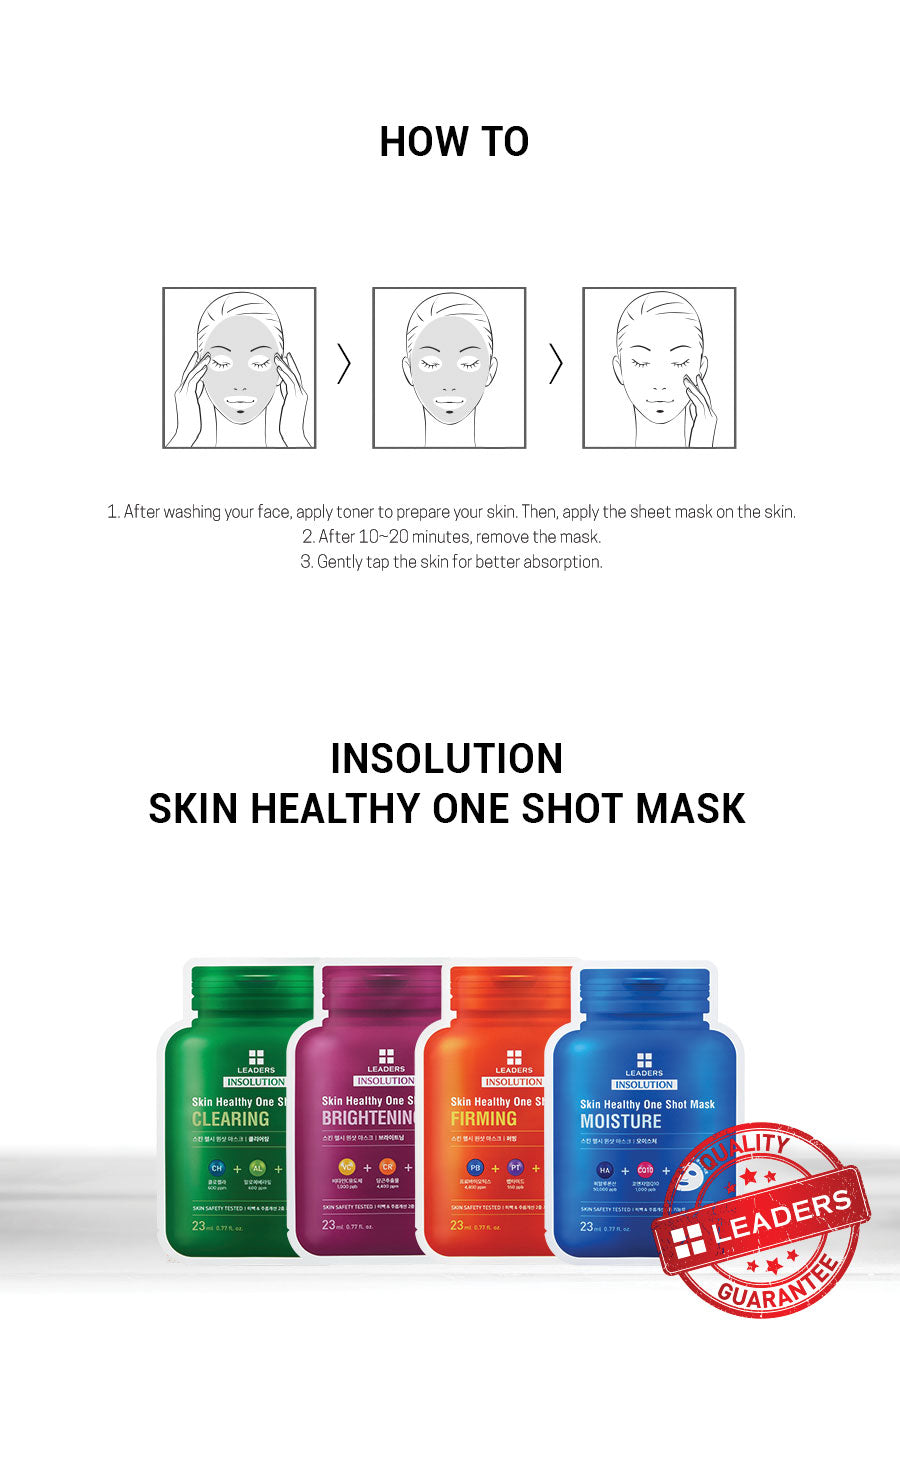 Skin-Healthy-One-Shot-Moisture-5